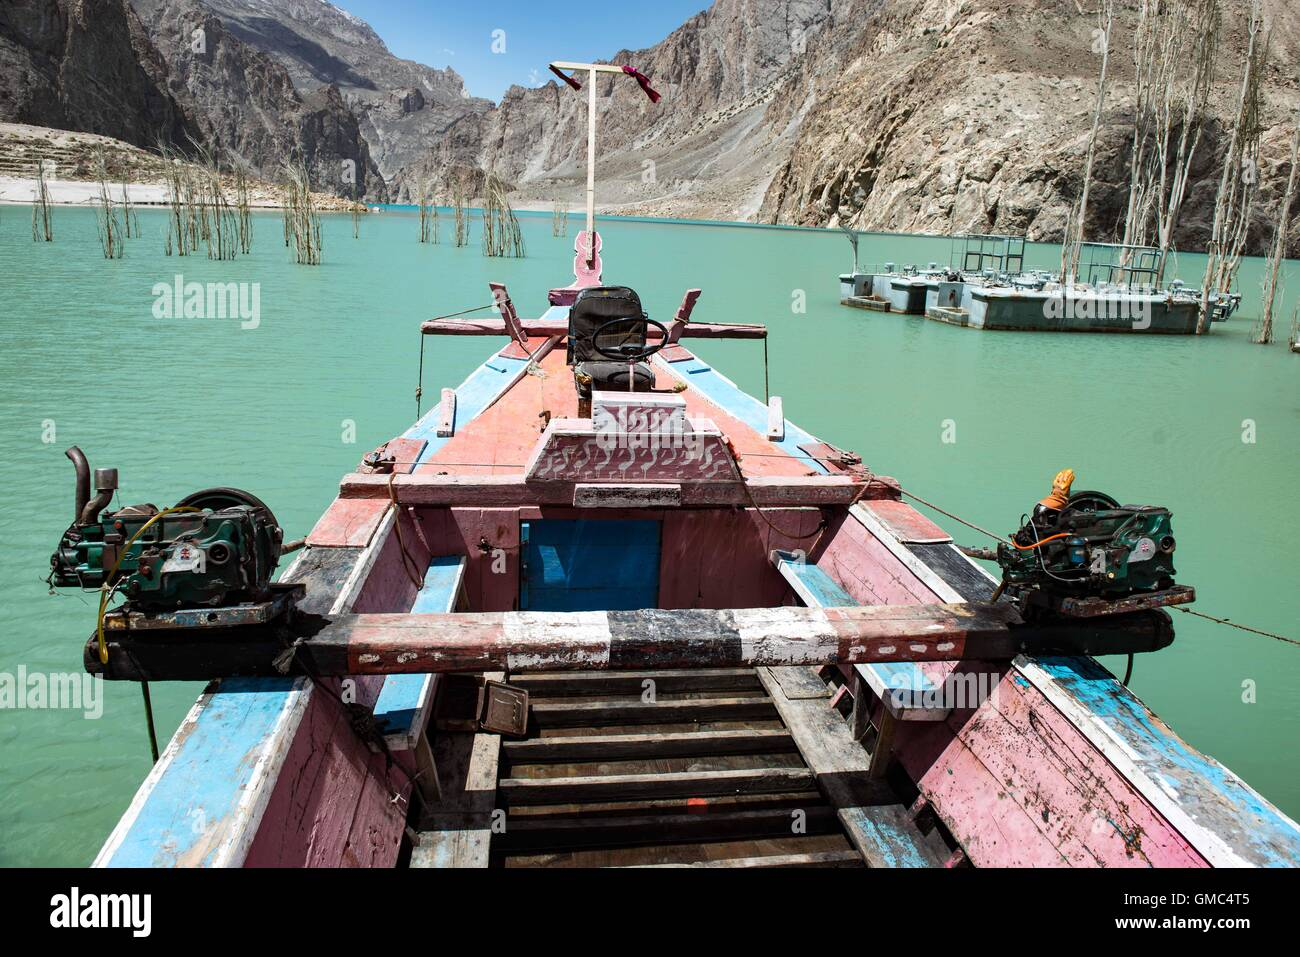 Redundant ferry boats and a pontoon on Attabad lake. The landslide that formed the lake is in the background. - Stock Image